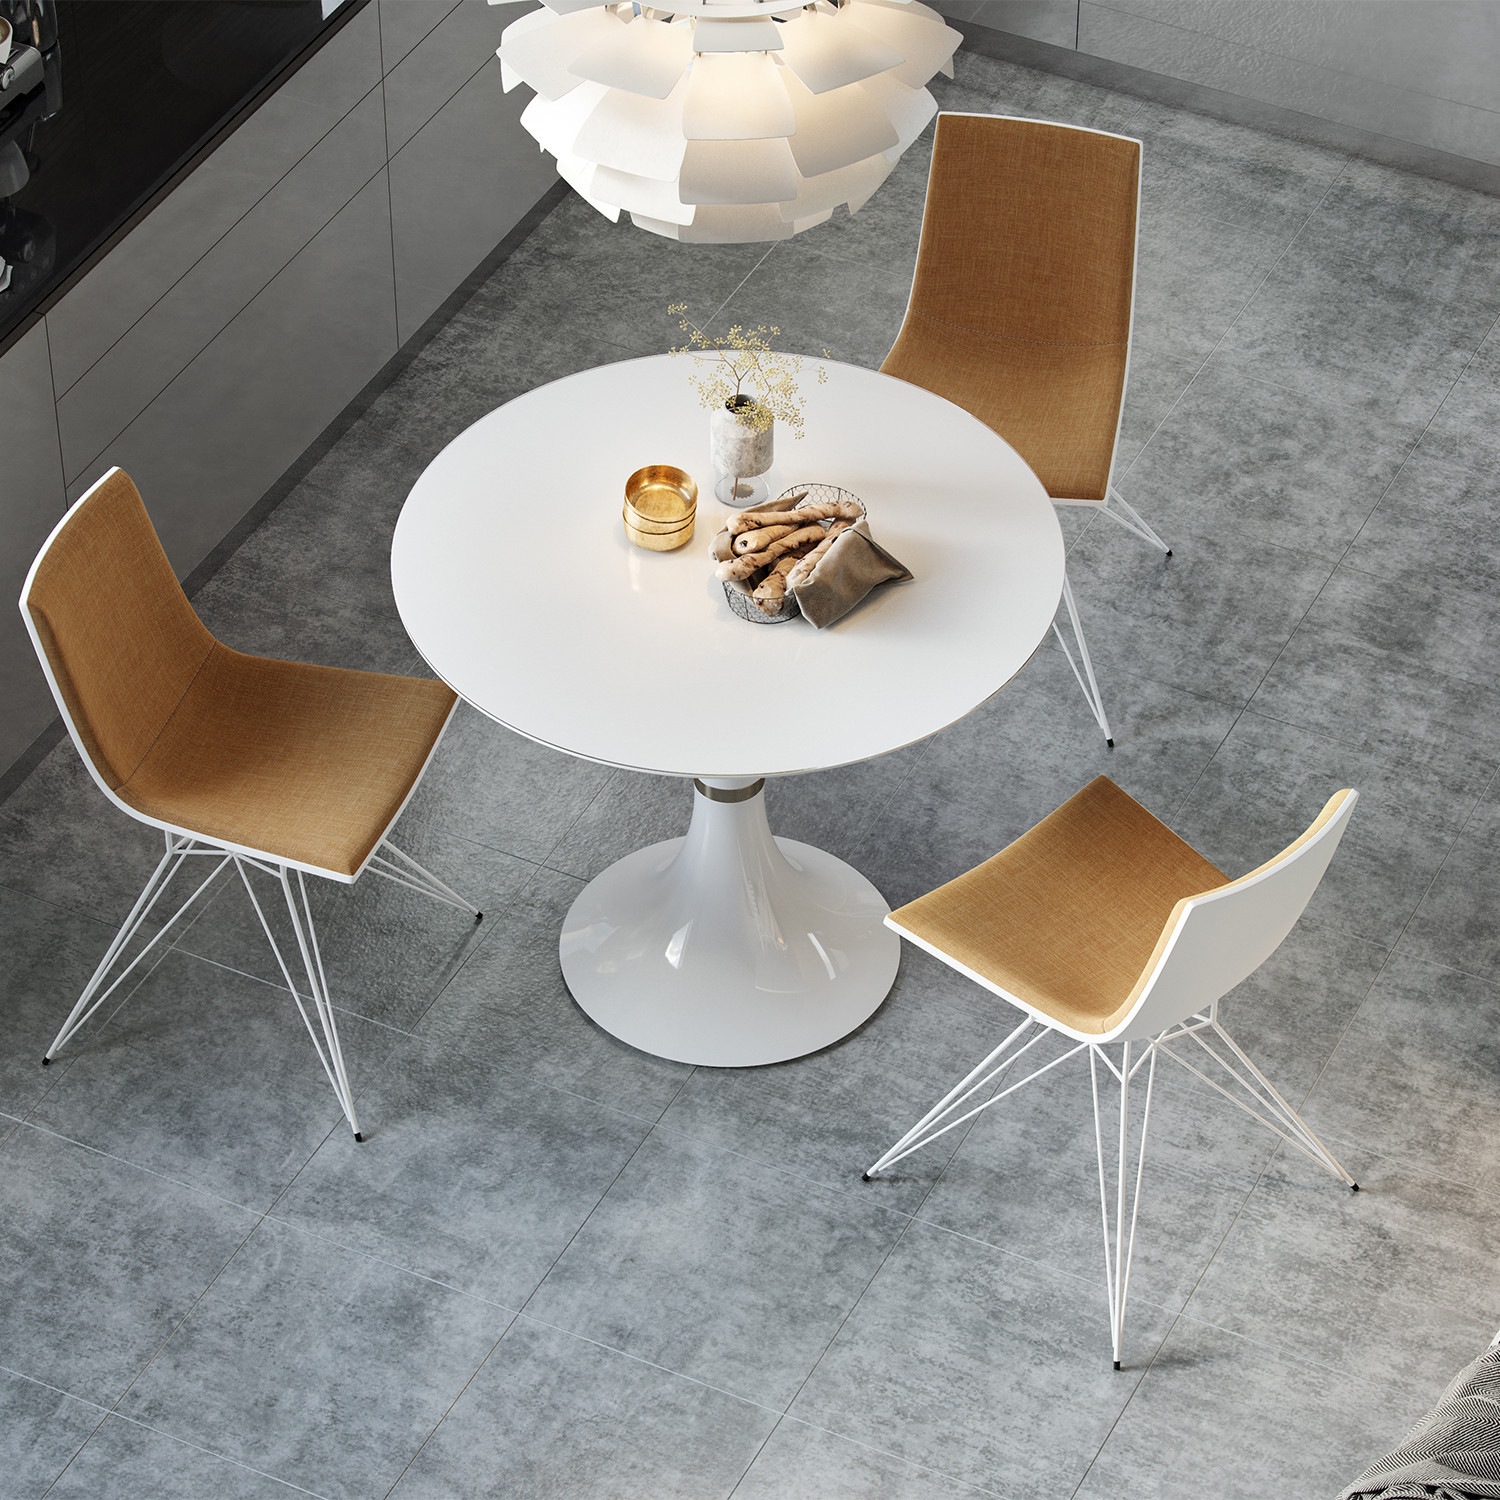 Waterloo Dining Table White Glass White Lacquer Small - 36 diameter dining table